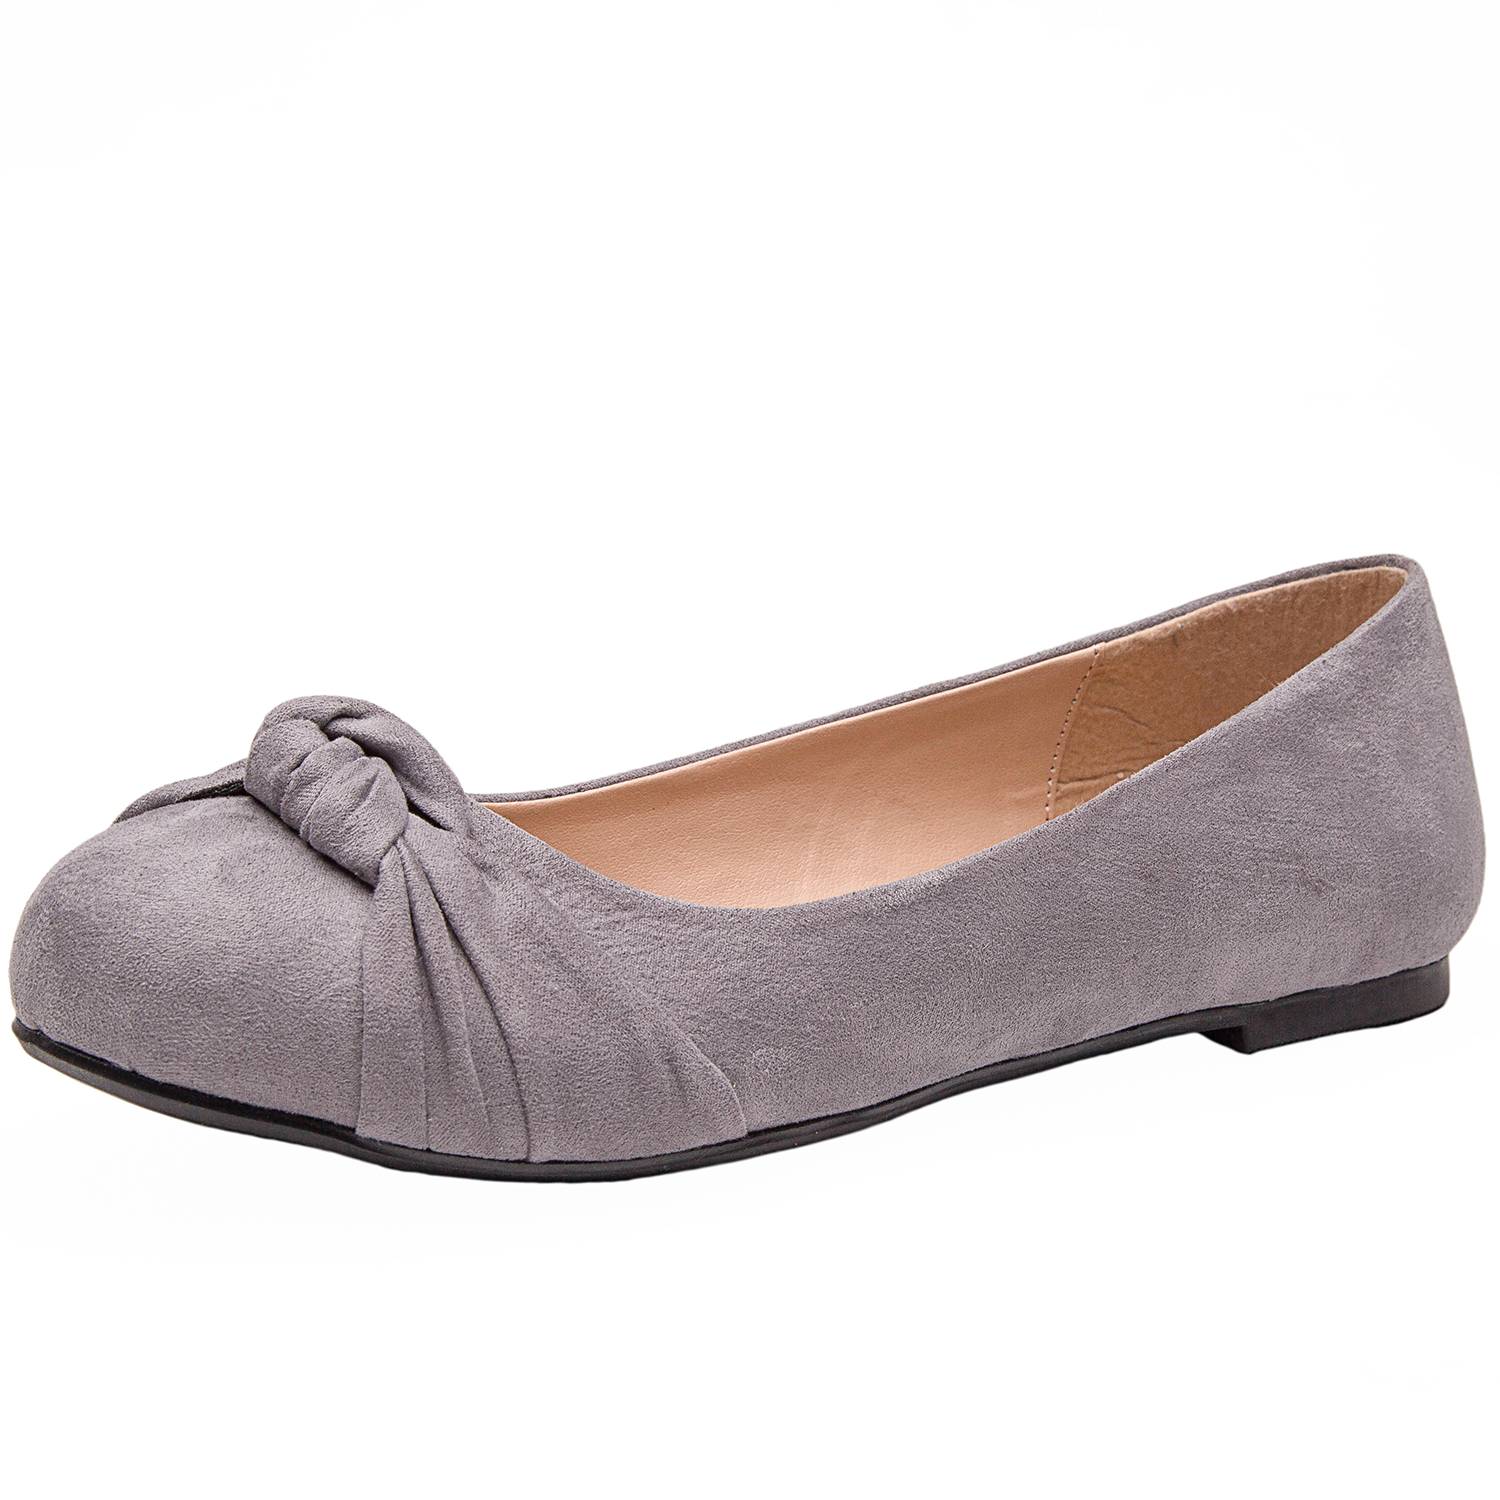 a9fae03ced1c5 Luoika Women's Wide Width Flat Shoes - Comfortable Slip On Round Toe Ballet  Flats